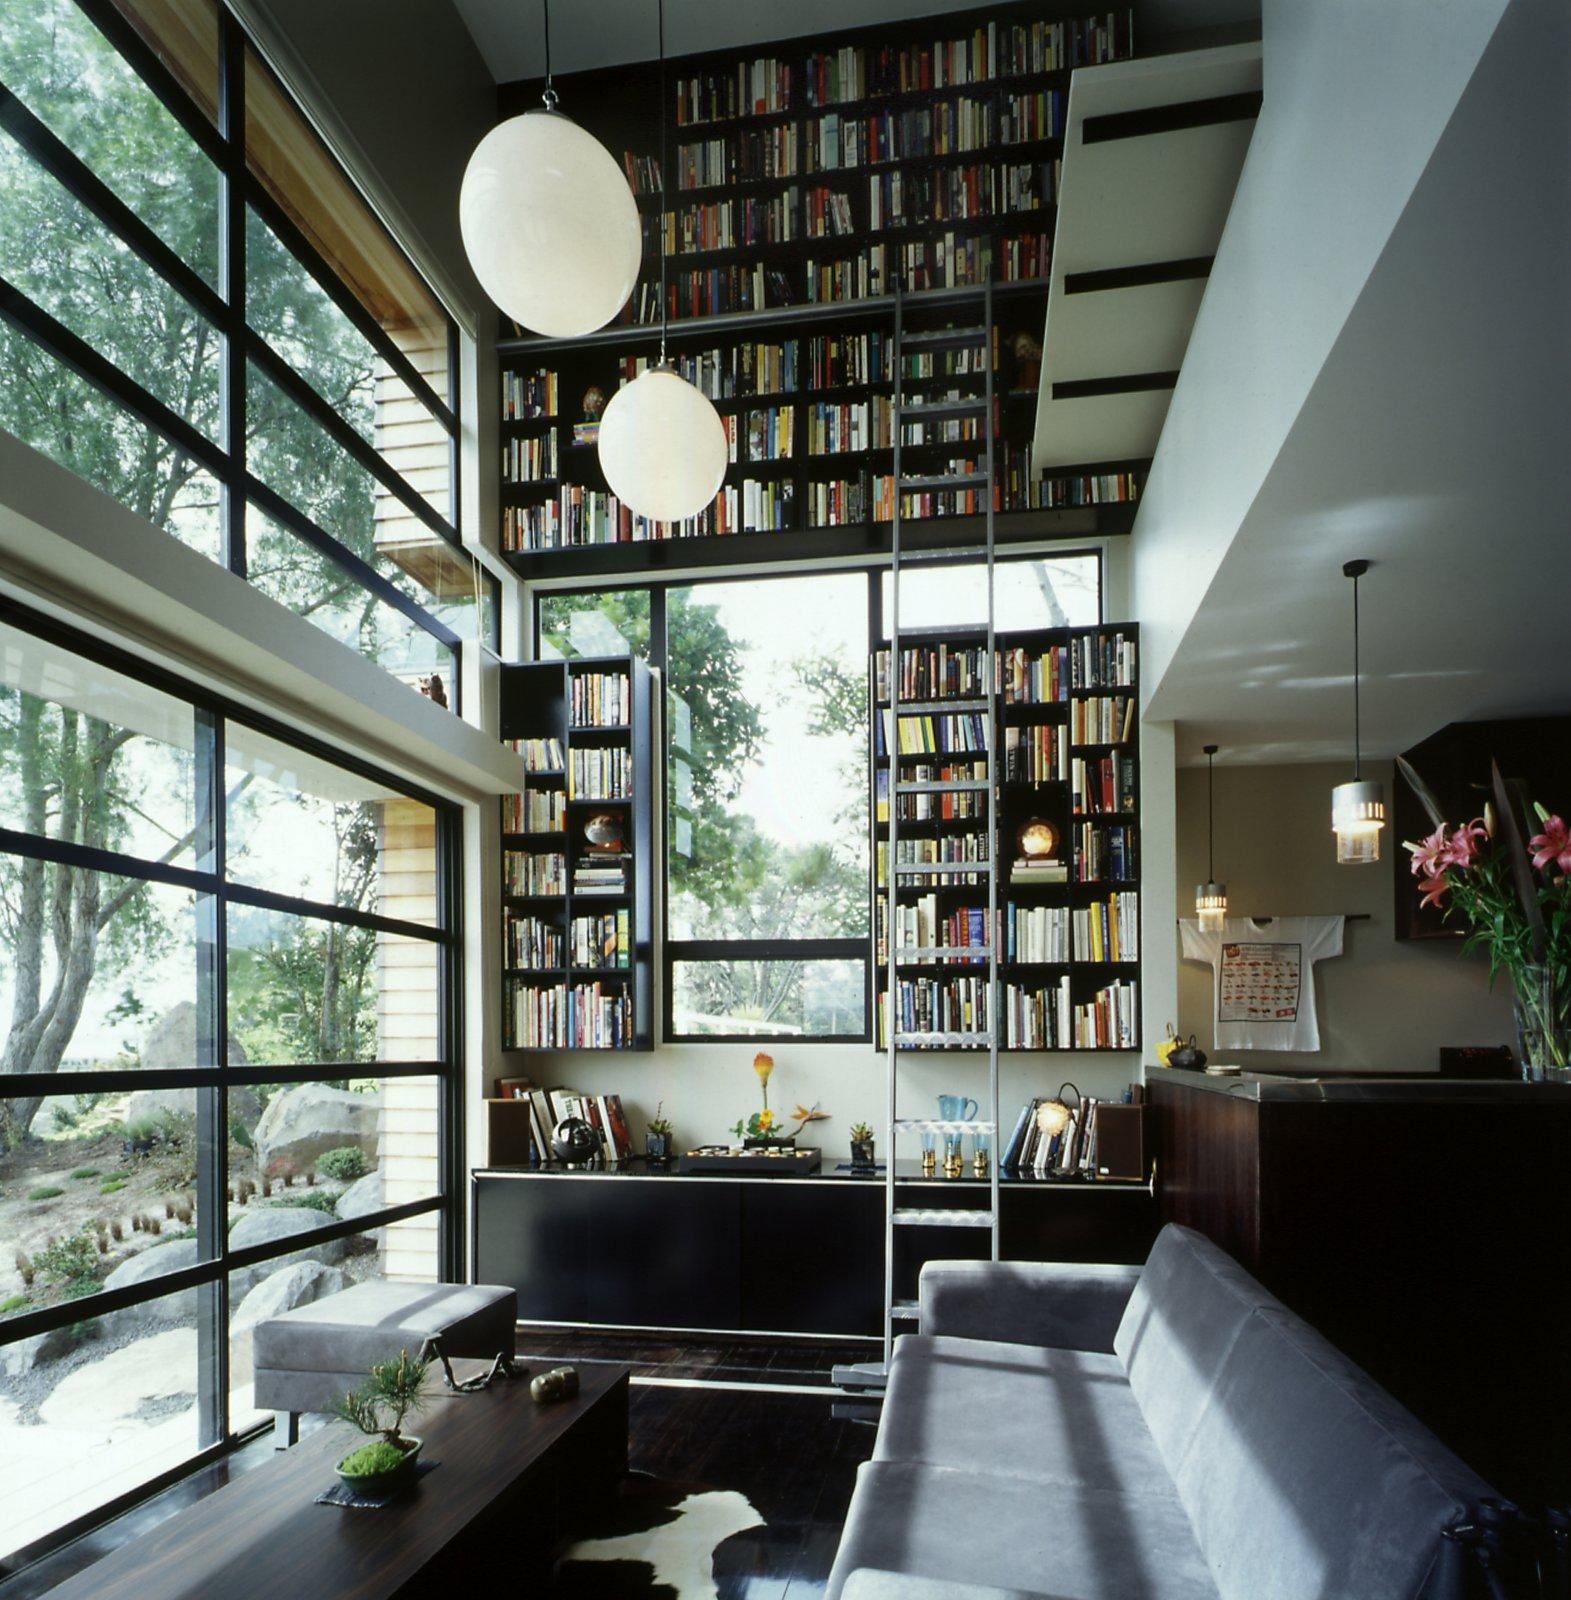 Hughes' collection of hundreds of books is stored on a vertiginous two story bookcase, which takes up the whole of the northern wall of the living room. It's an ingenious solution to the small-space dwelling that draws the eye up, adding texture and interest to the room without taking up floor space.  bookcase